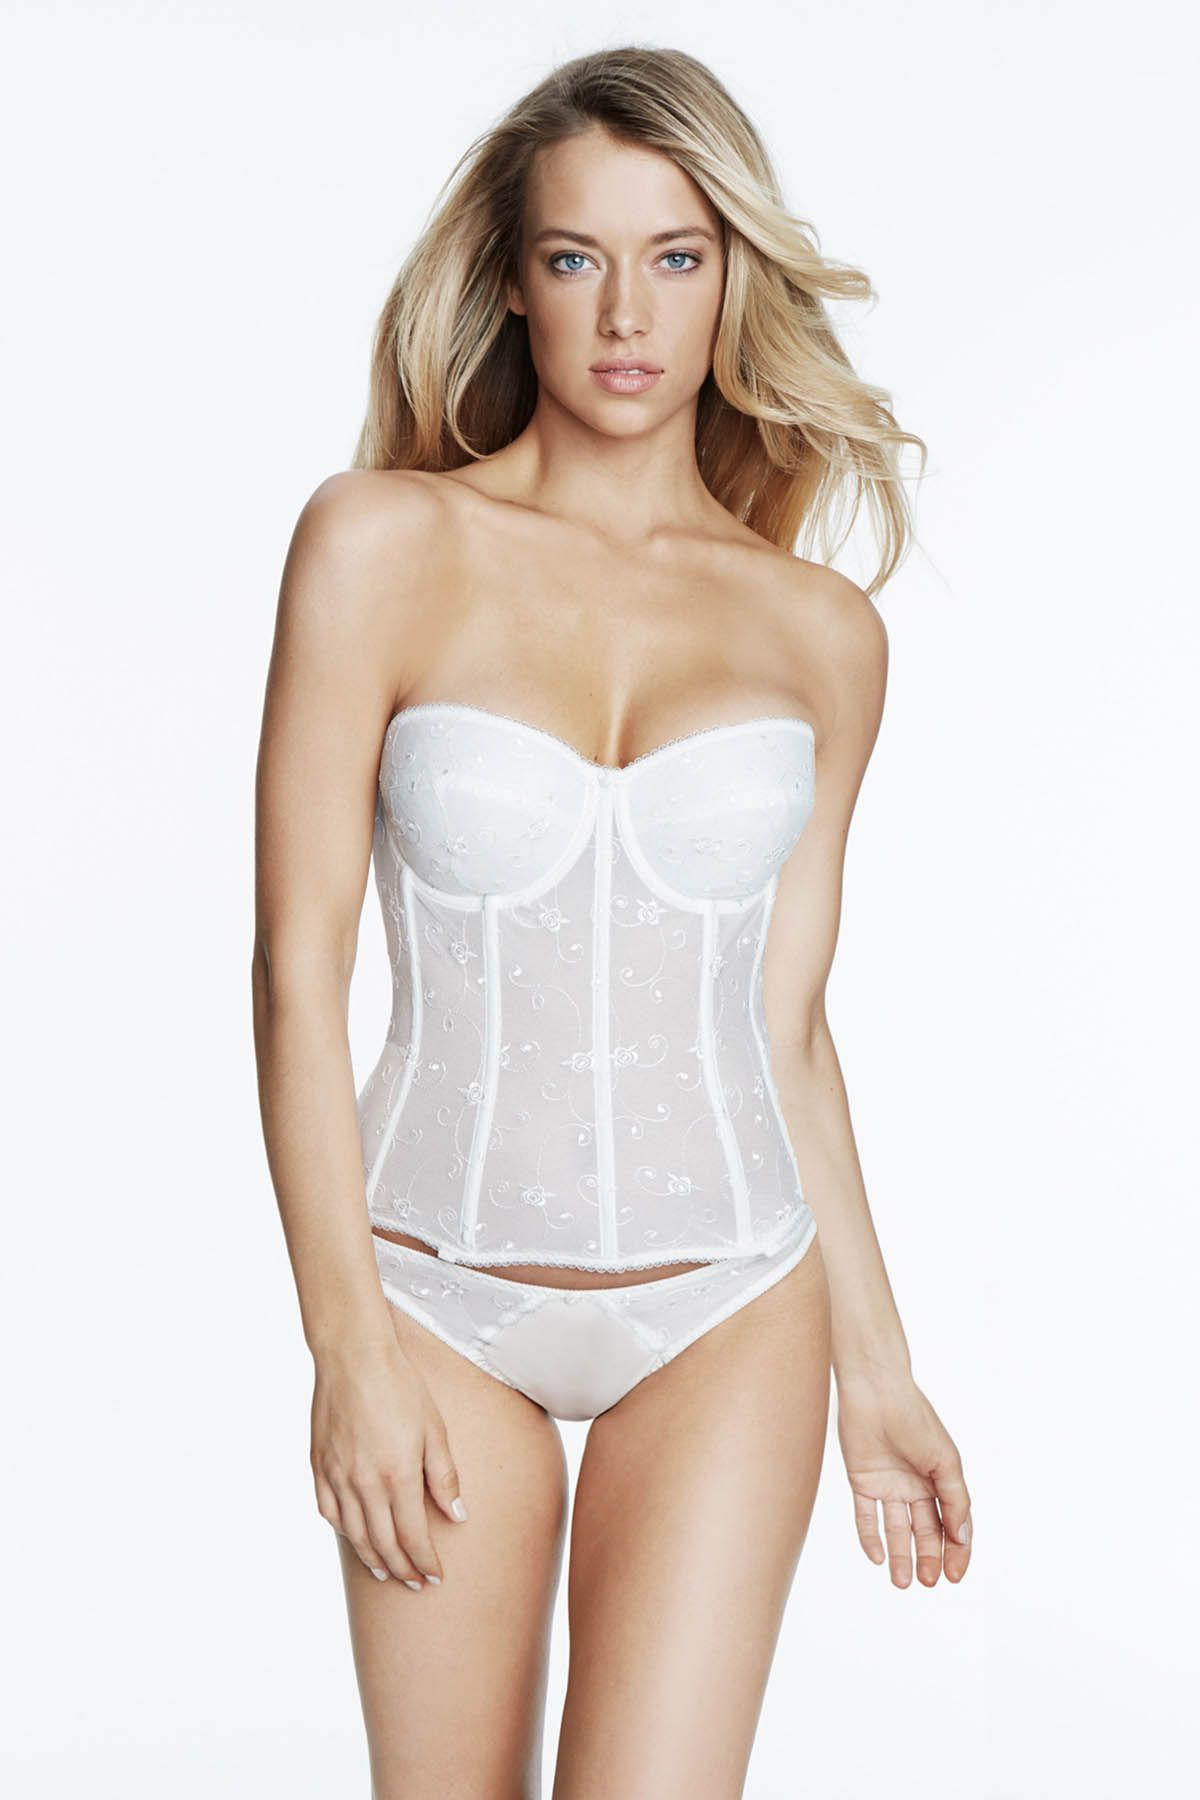 Too much cleavage wedding dress  DOMINIQUE Rosemarie  Clothes for Women with Boobs  Pinterest